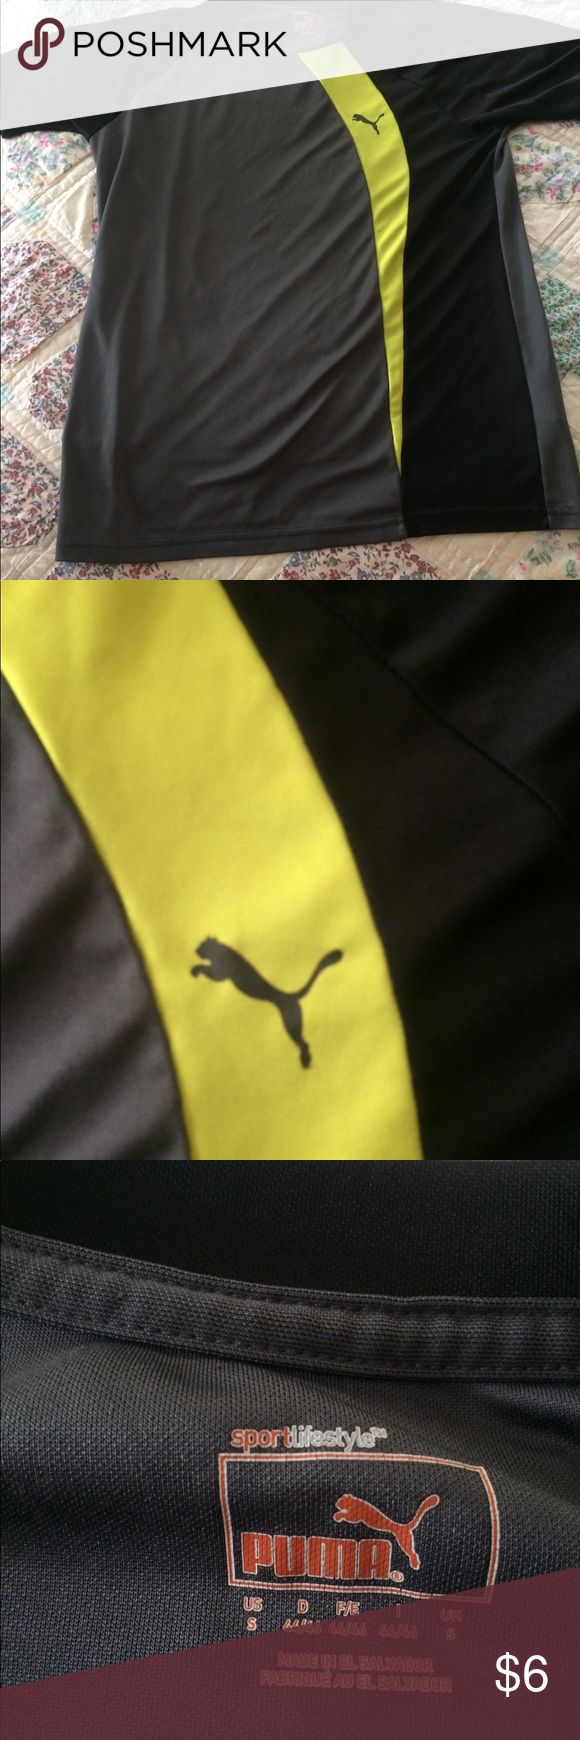 Boys' puma sport shirt. GUC! Small. Lycra blend athletic shirt in black and yellow. Puma Shirts & Tops Tees - Short Sleeve